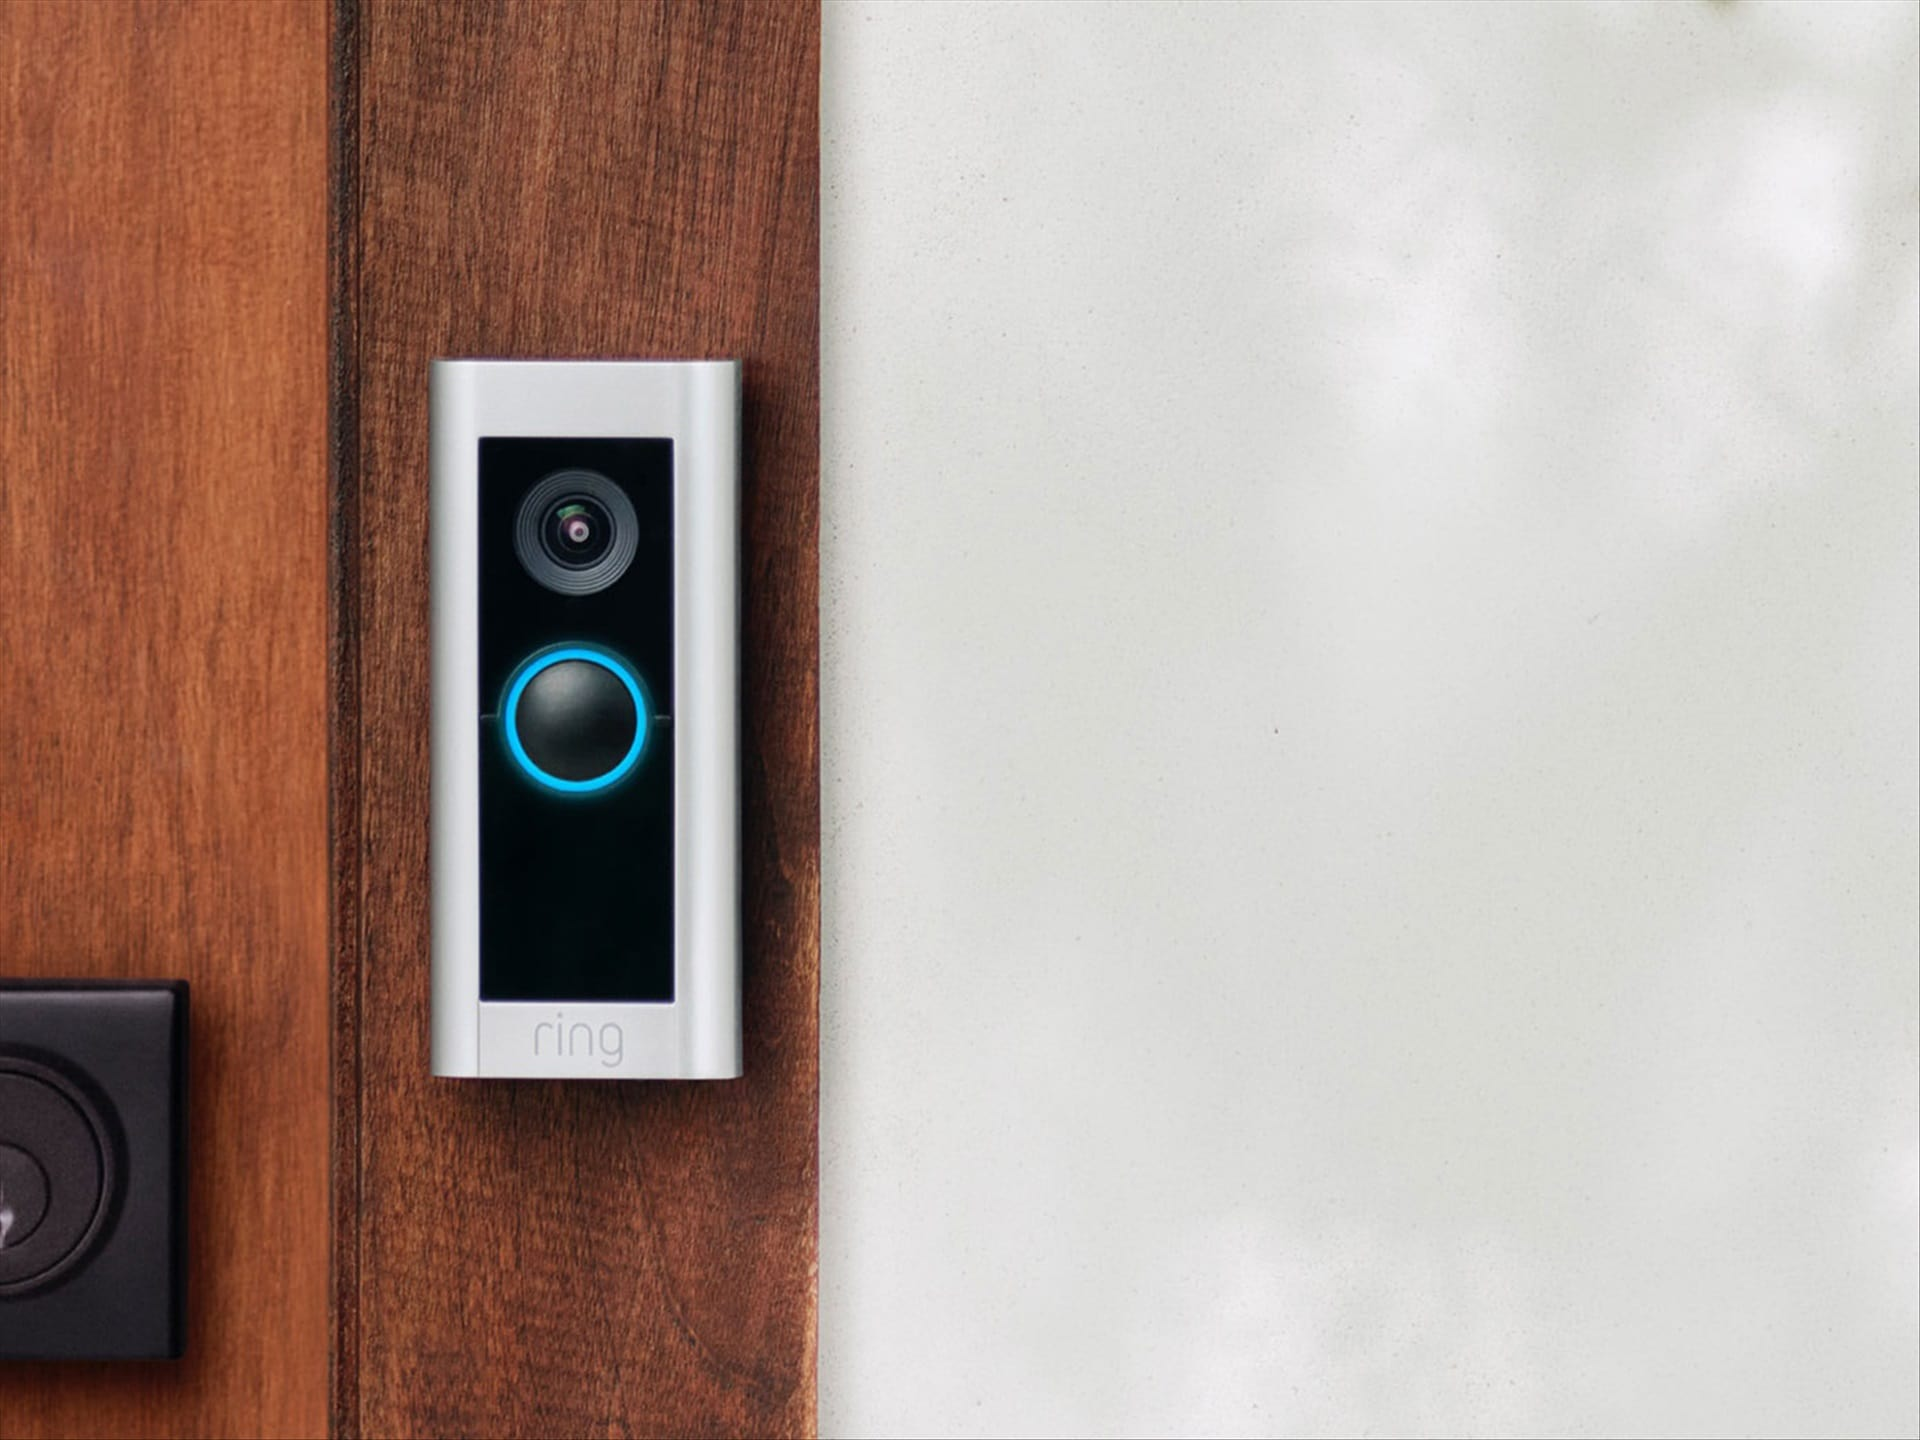 The new Ring Video Doorbell Pro 2 will come with 3D Motion Detection & Bird's Eye View